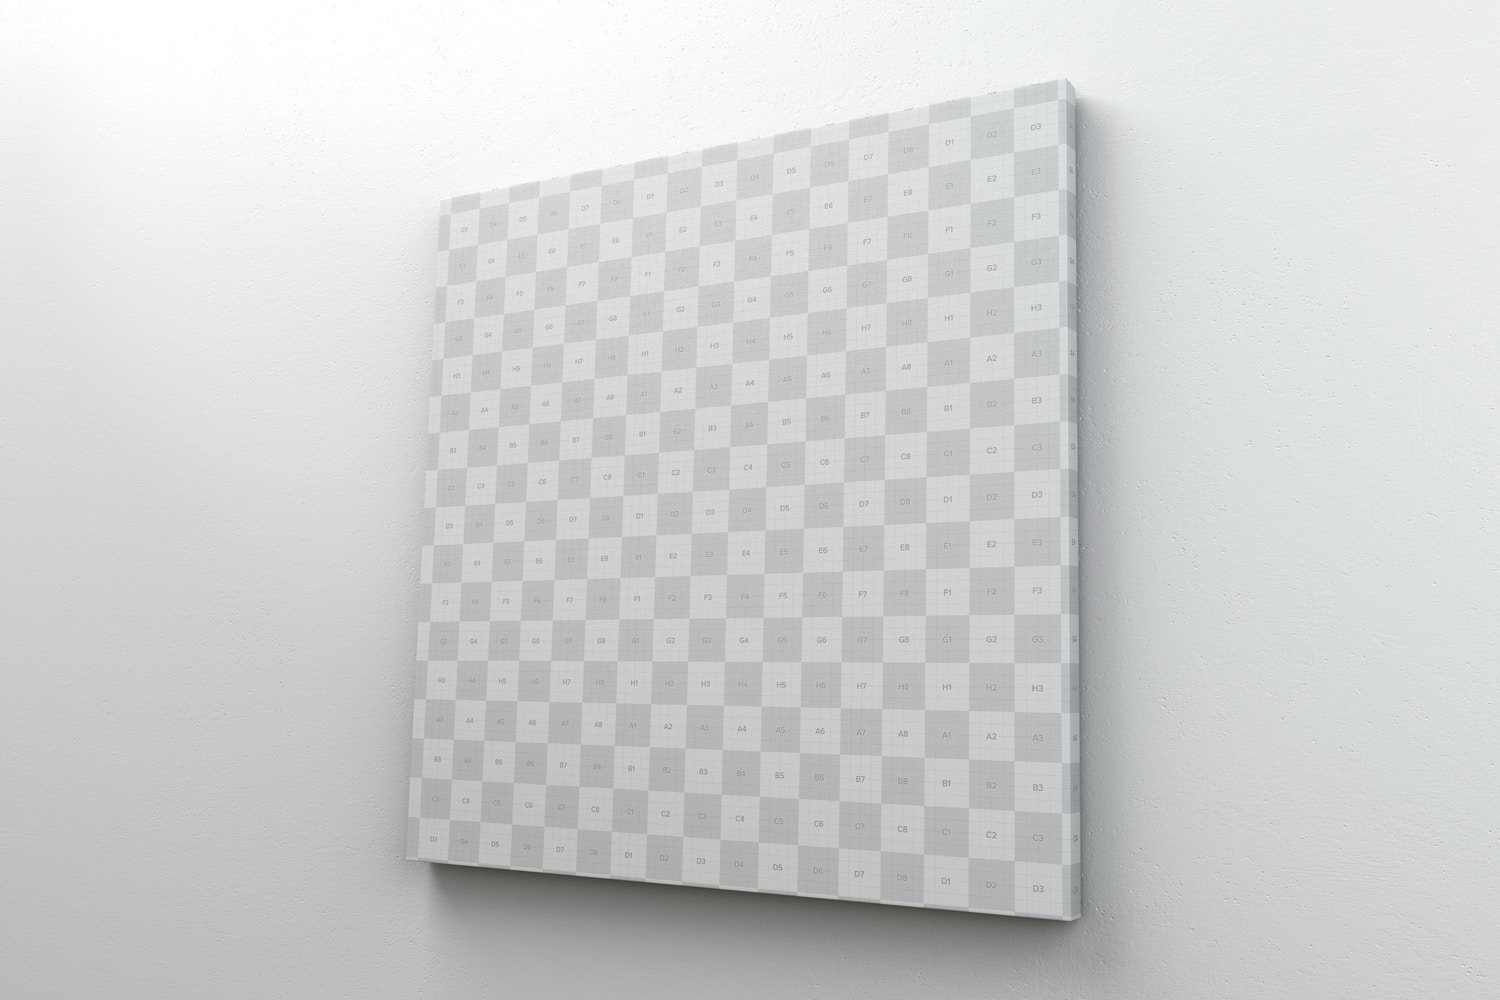 Square Canvas Mockup Hanging on Wall, Right View (2) by Original Mockups on Original Mockups